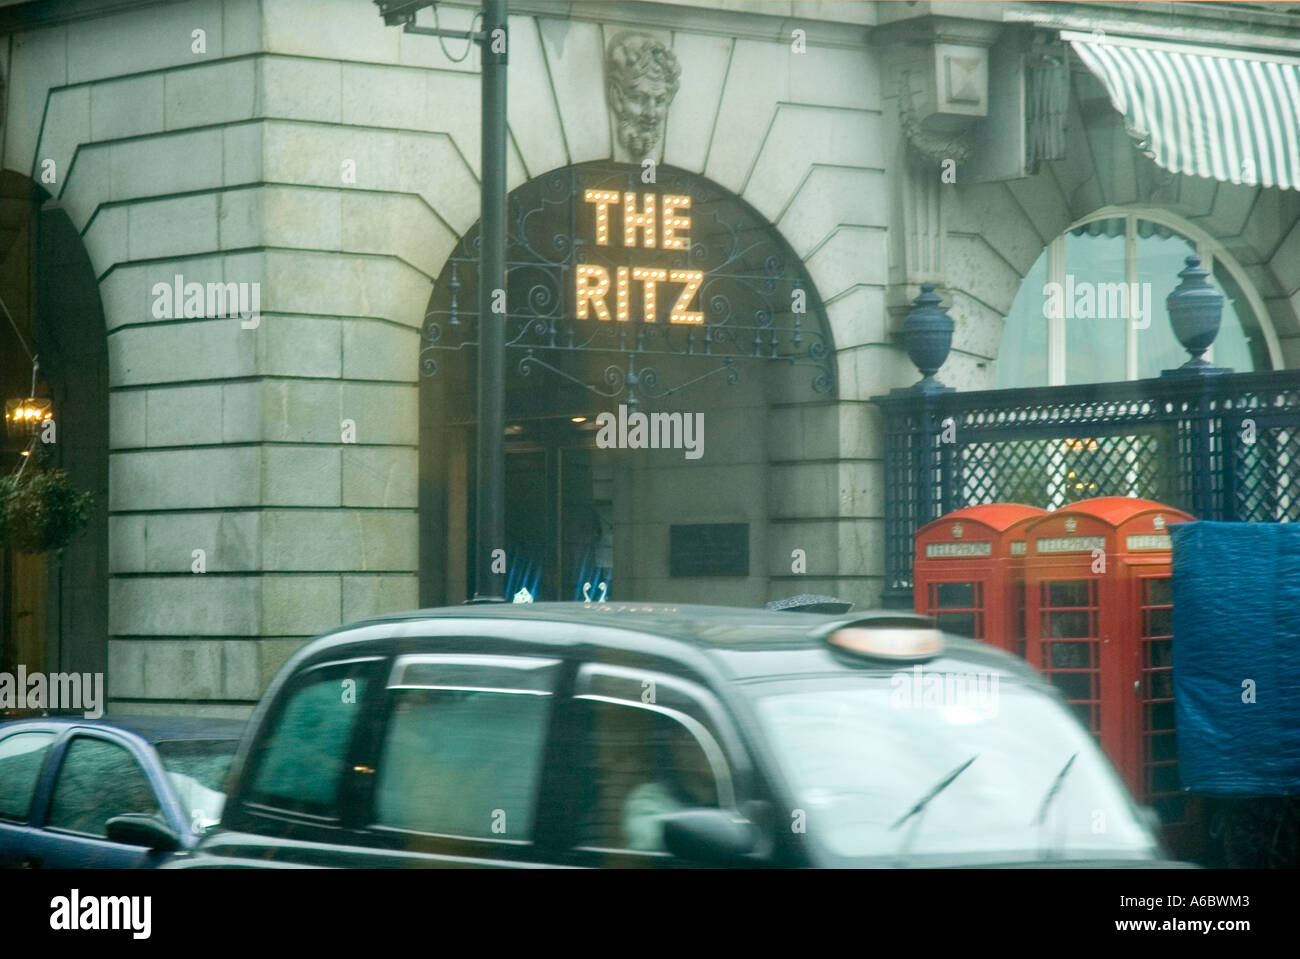 A rainy day view of the Ritz on Piccadilly in central London - Stock Image